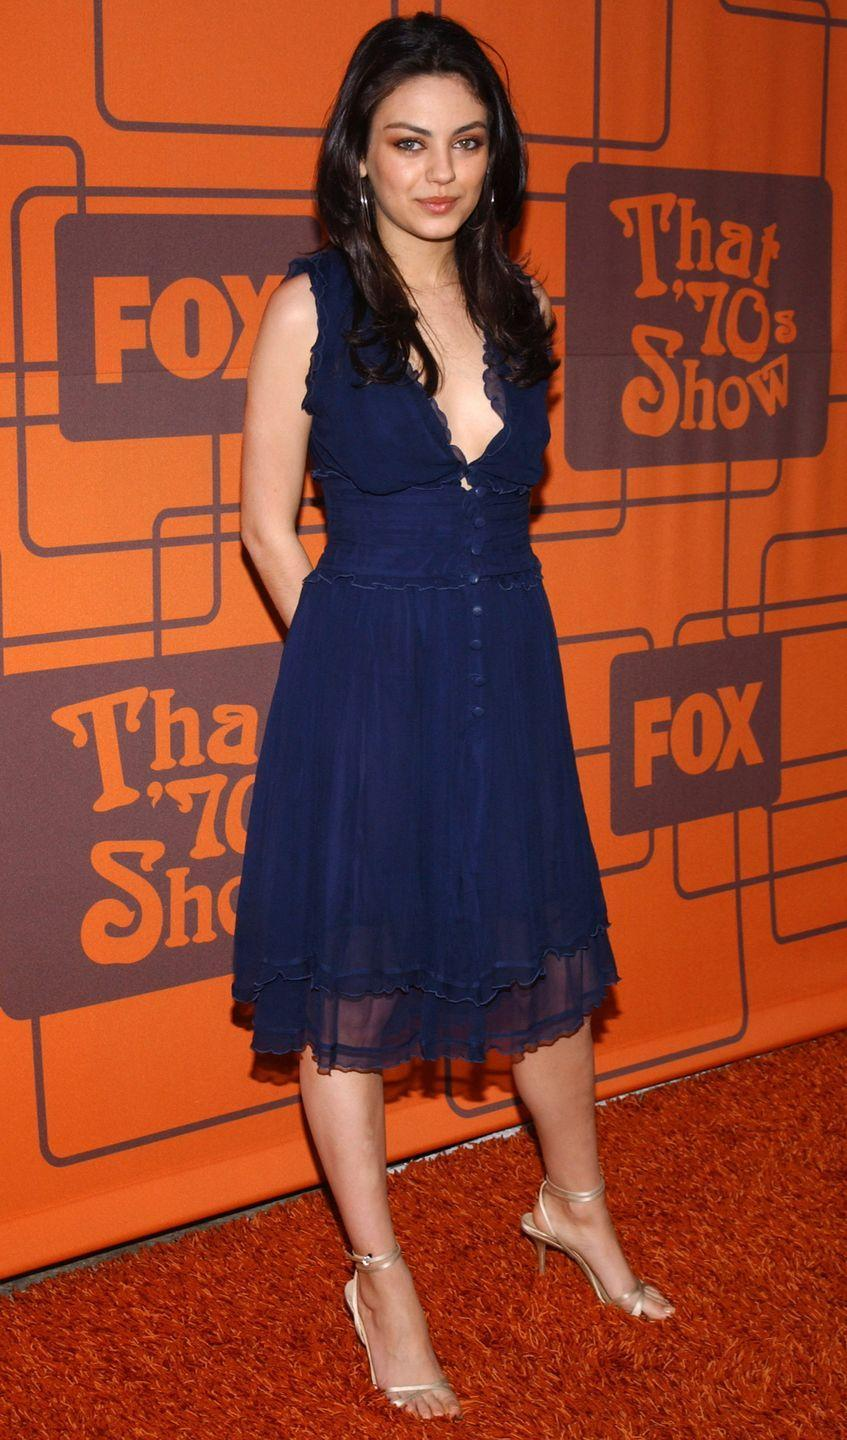 <p>When fans first met Mila Kunis, she was only 15 years old at the beginning of her long run as Jackie on <em>That '70s Show</em>. </p>